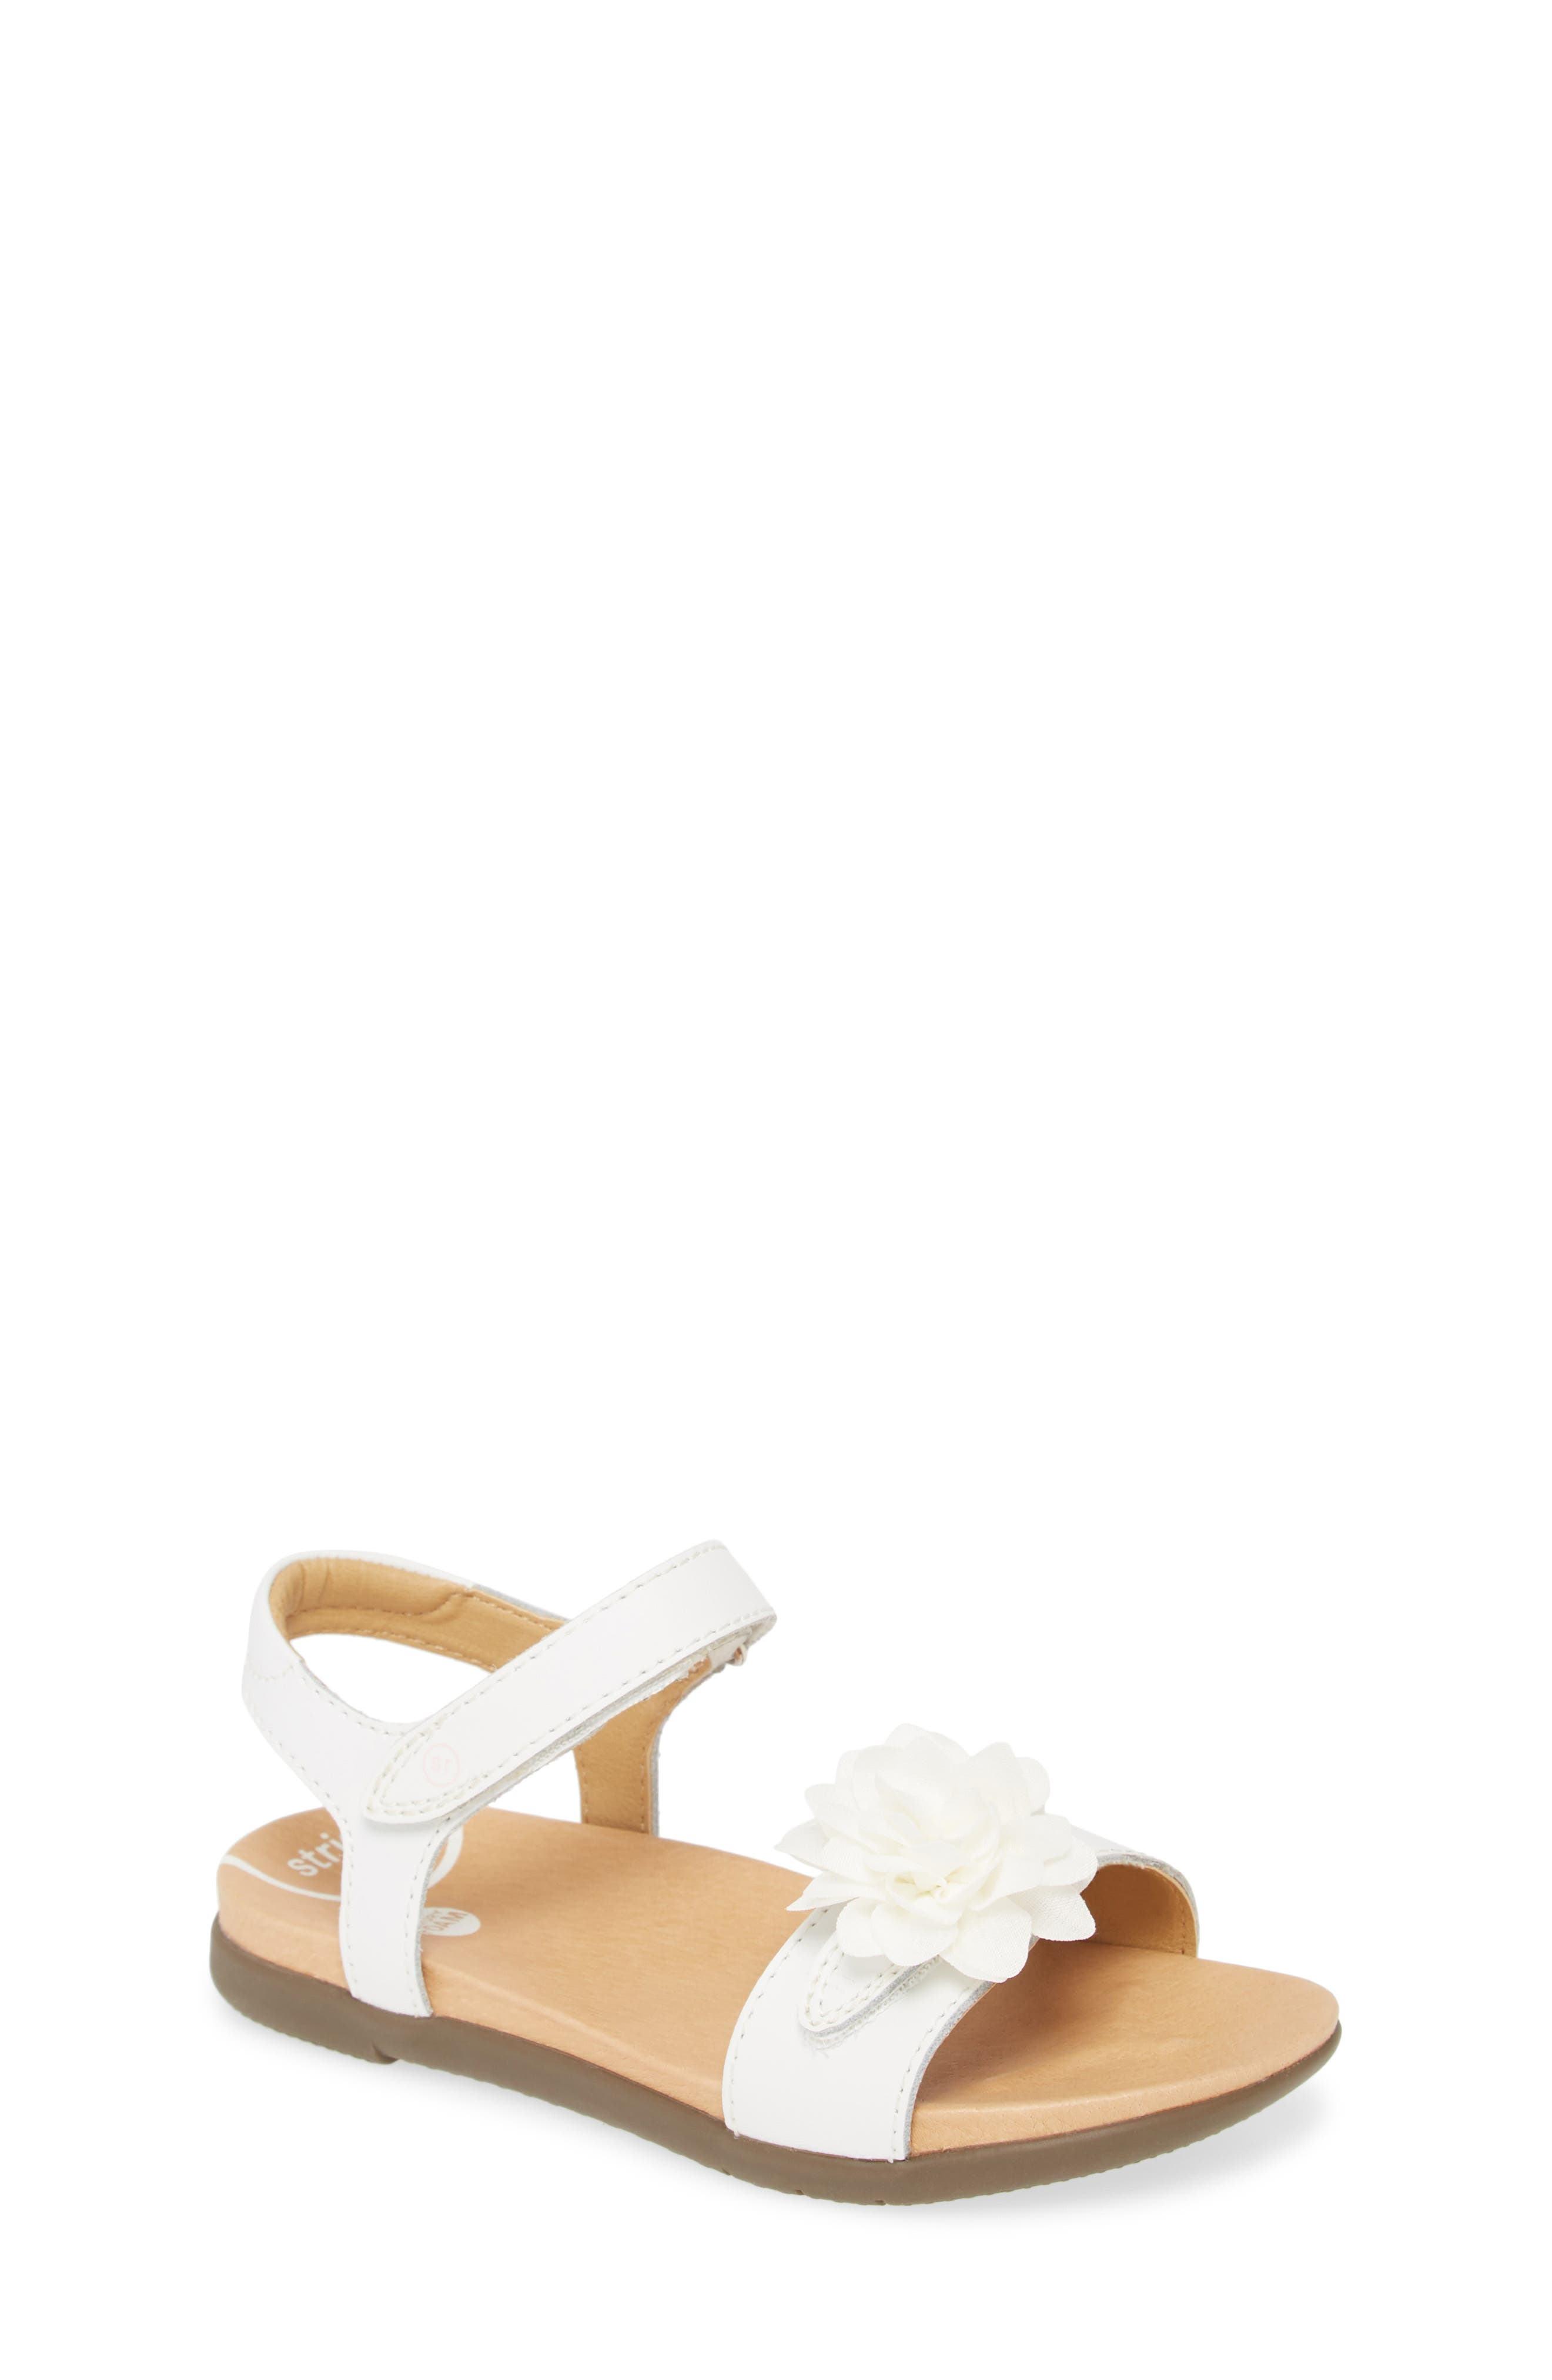 May your little one\\\'s steps be graceful in this darling flower-adorned sandal with sensory tread sole and contoured foam footbed for comfort and balance. Style Name: Stride Rite Srtech Truly Sandal (Baby, Walker, Toddler & Little Kid). Style Number: 5980834 1. Available in stores.